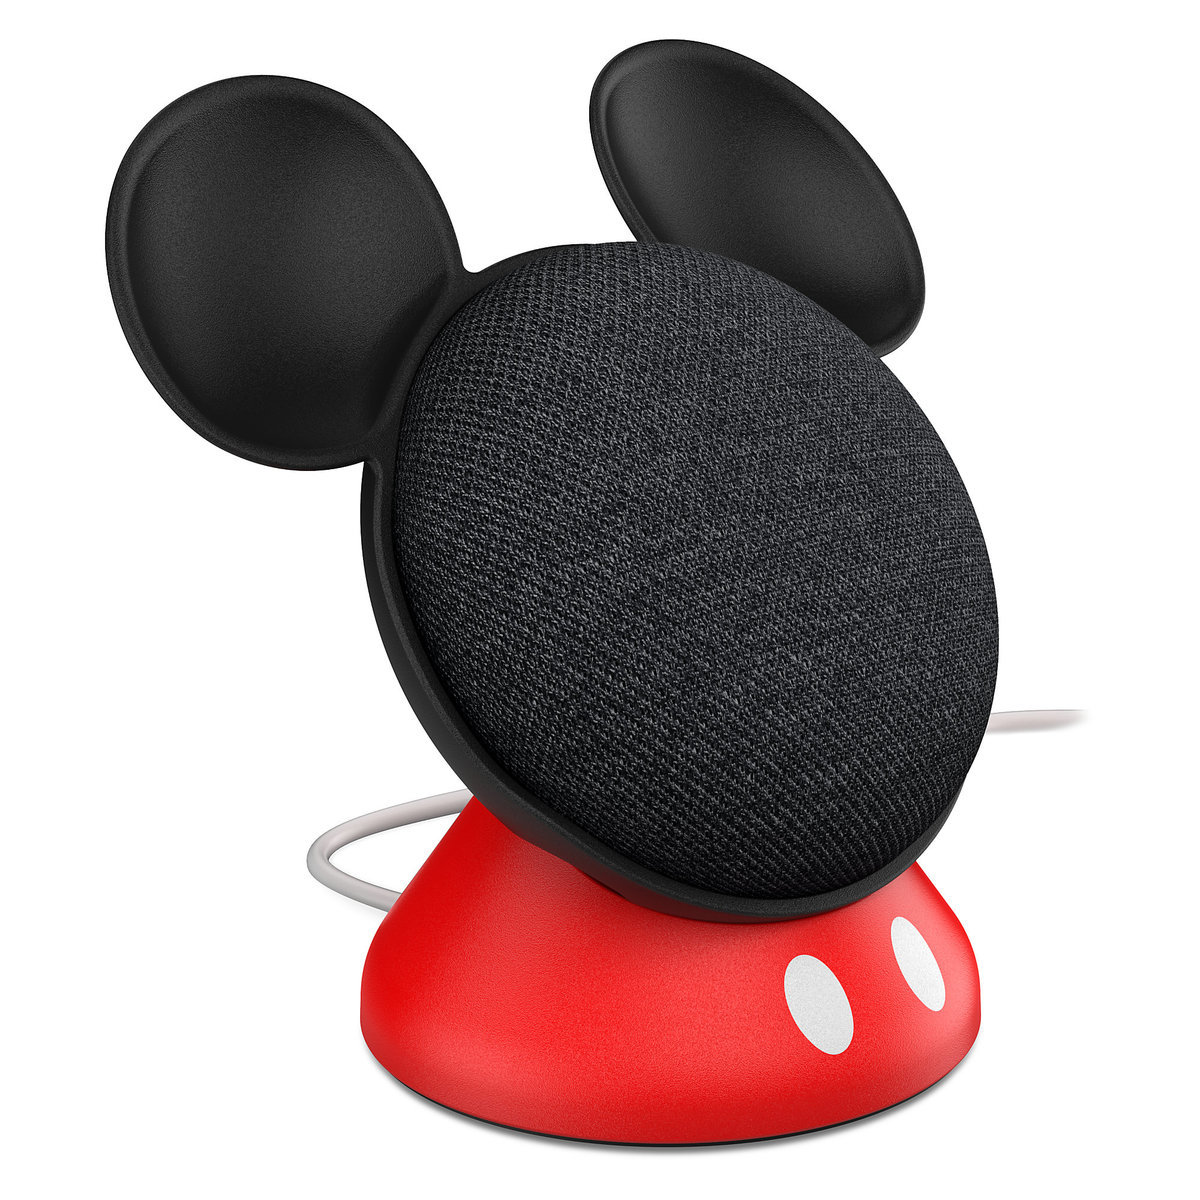 new concept ebf73 811a3 Mickey Mouse Den Series Mount for Google Home Mini by OtterBox